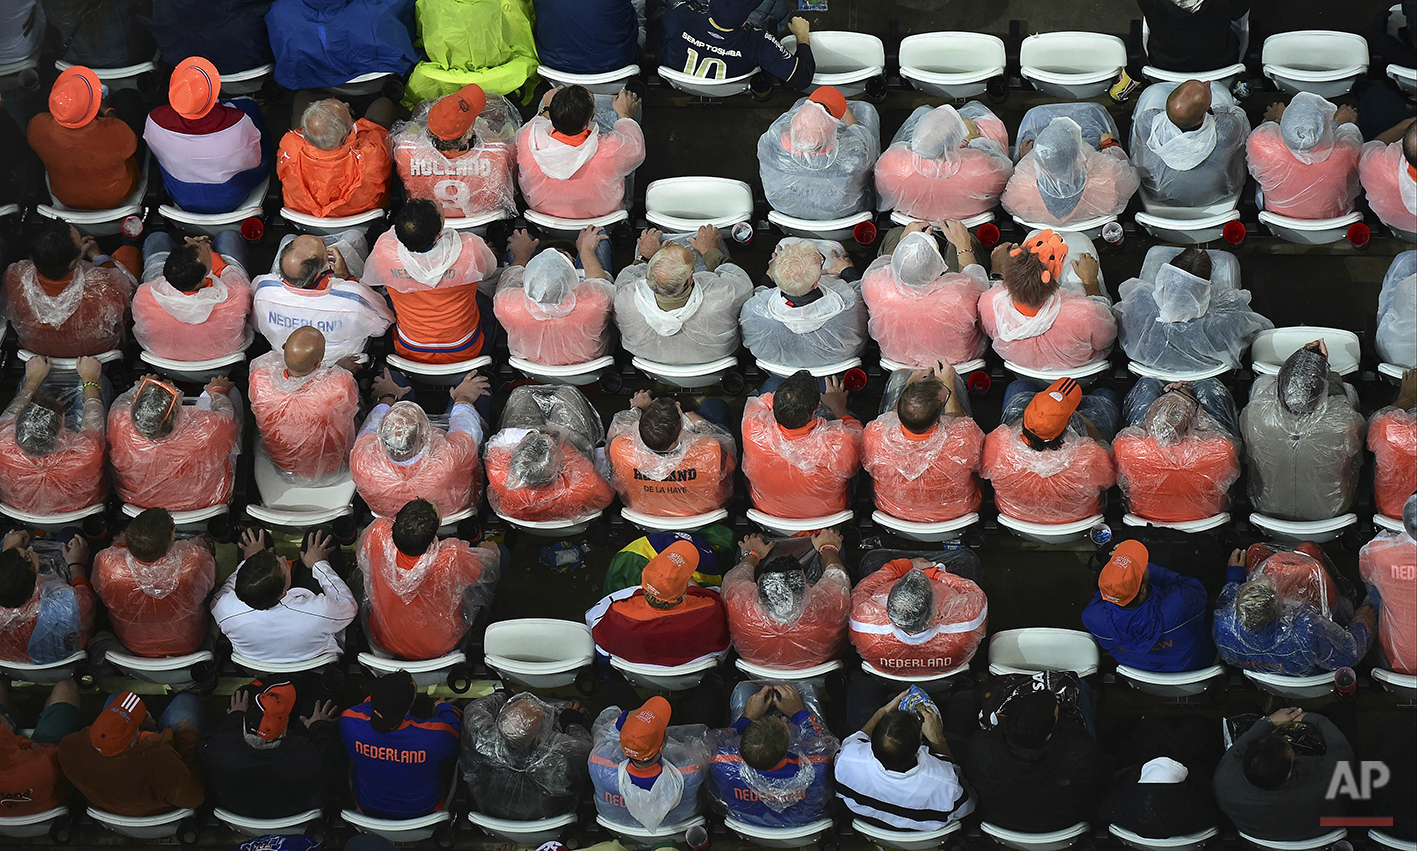 Dutch supporters watch from the stands during the World Cup semifinal soccer match between the Netherlands and Argentina at the Itaquerao Stadium in Sao Paulo, Brazil, Wednesday, July 9, 2014. (AP Photo/Francois Xavier Marit, Pool)